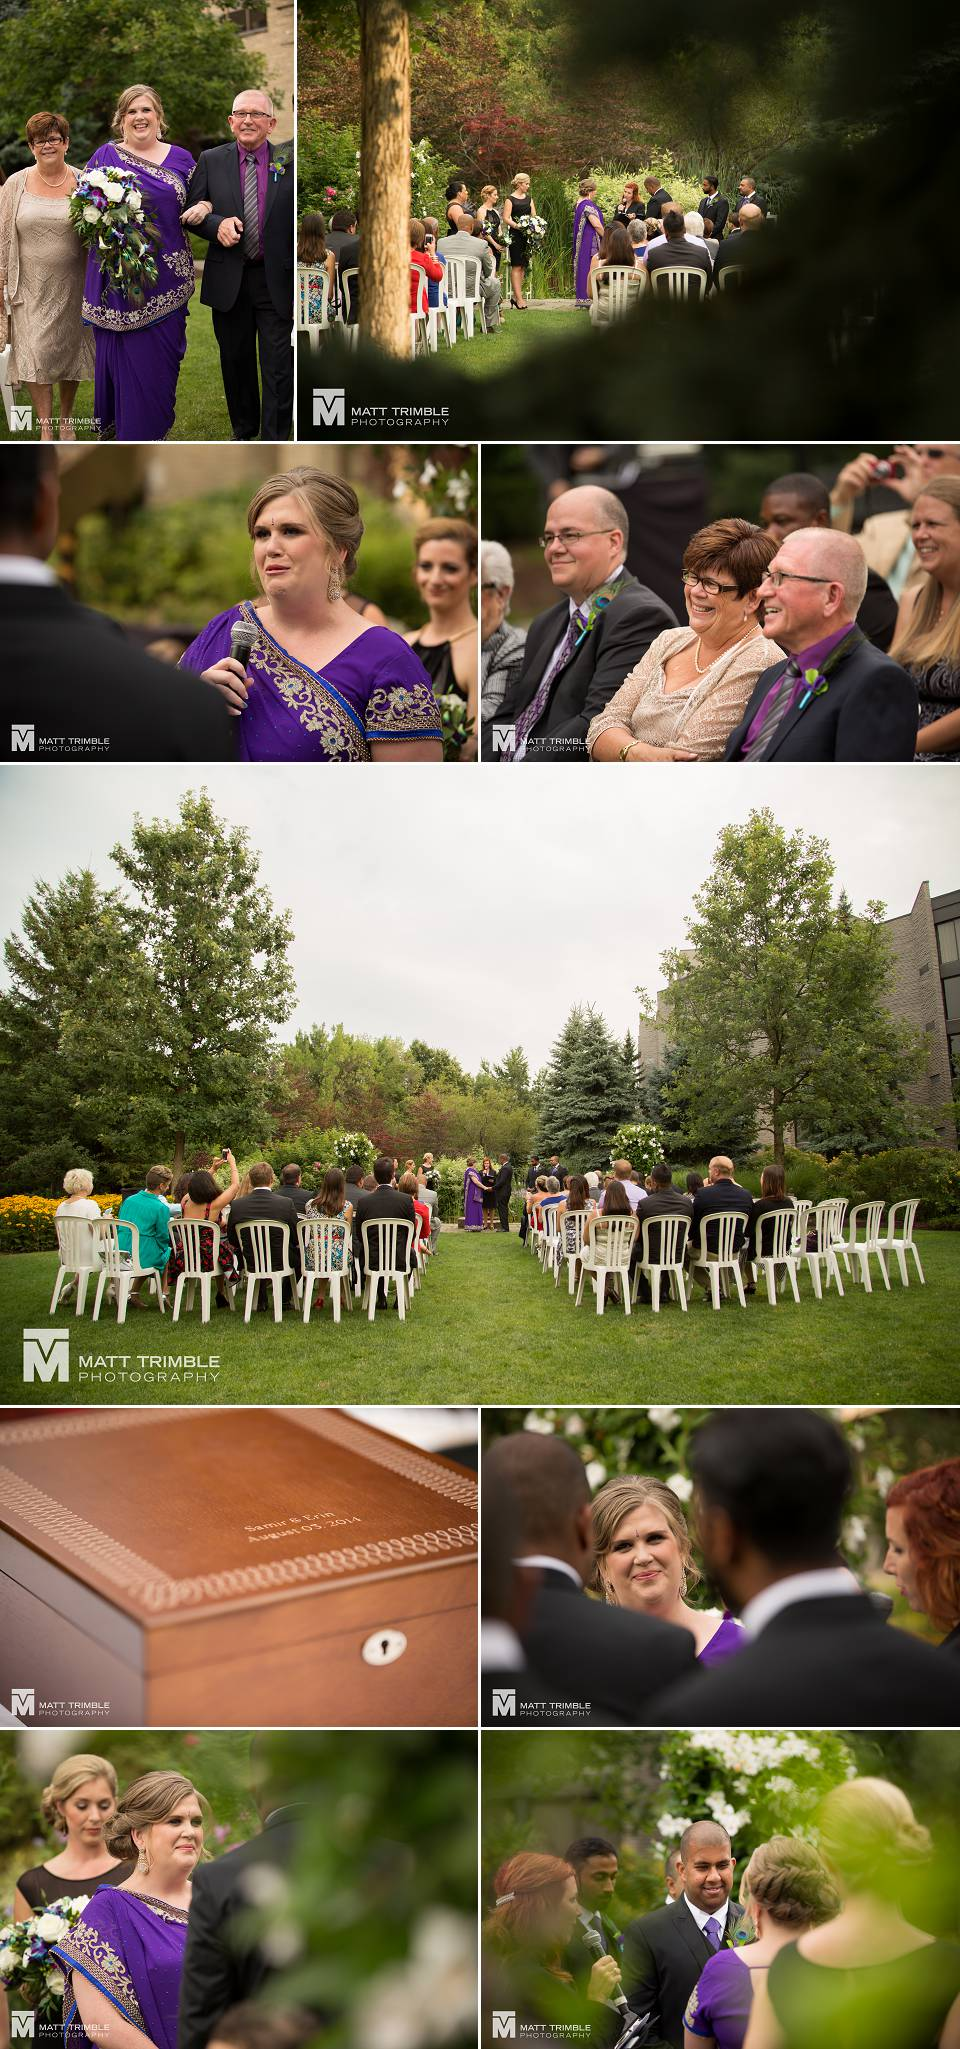 Niagara on the lake wedding ceremony photography